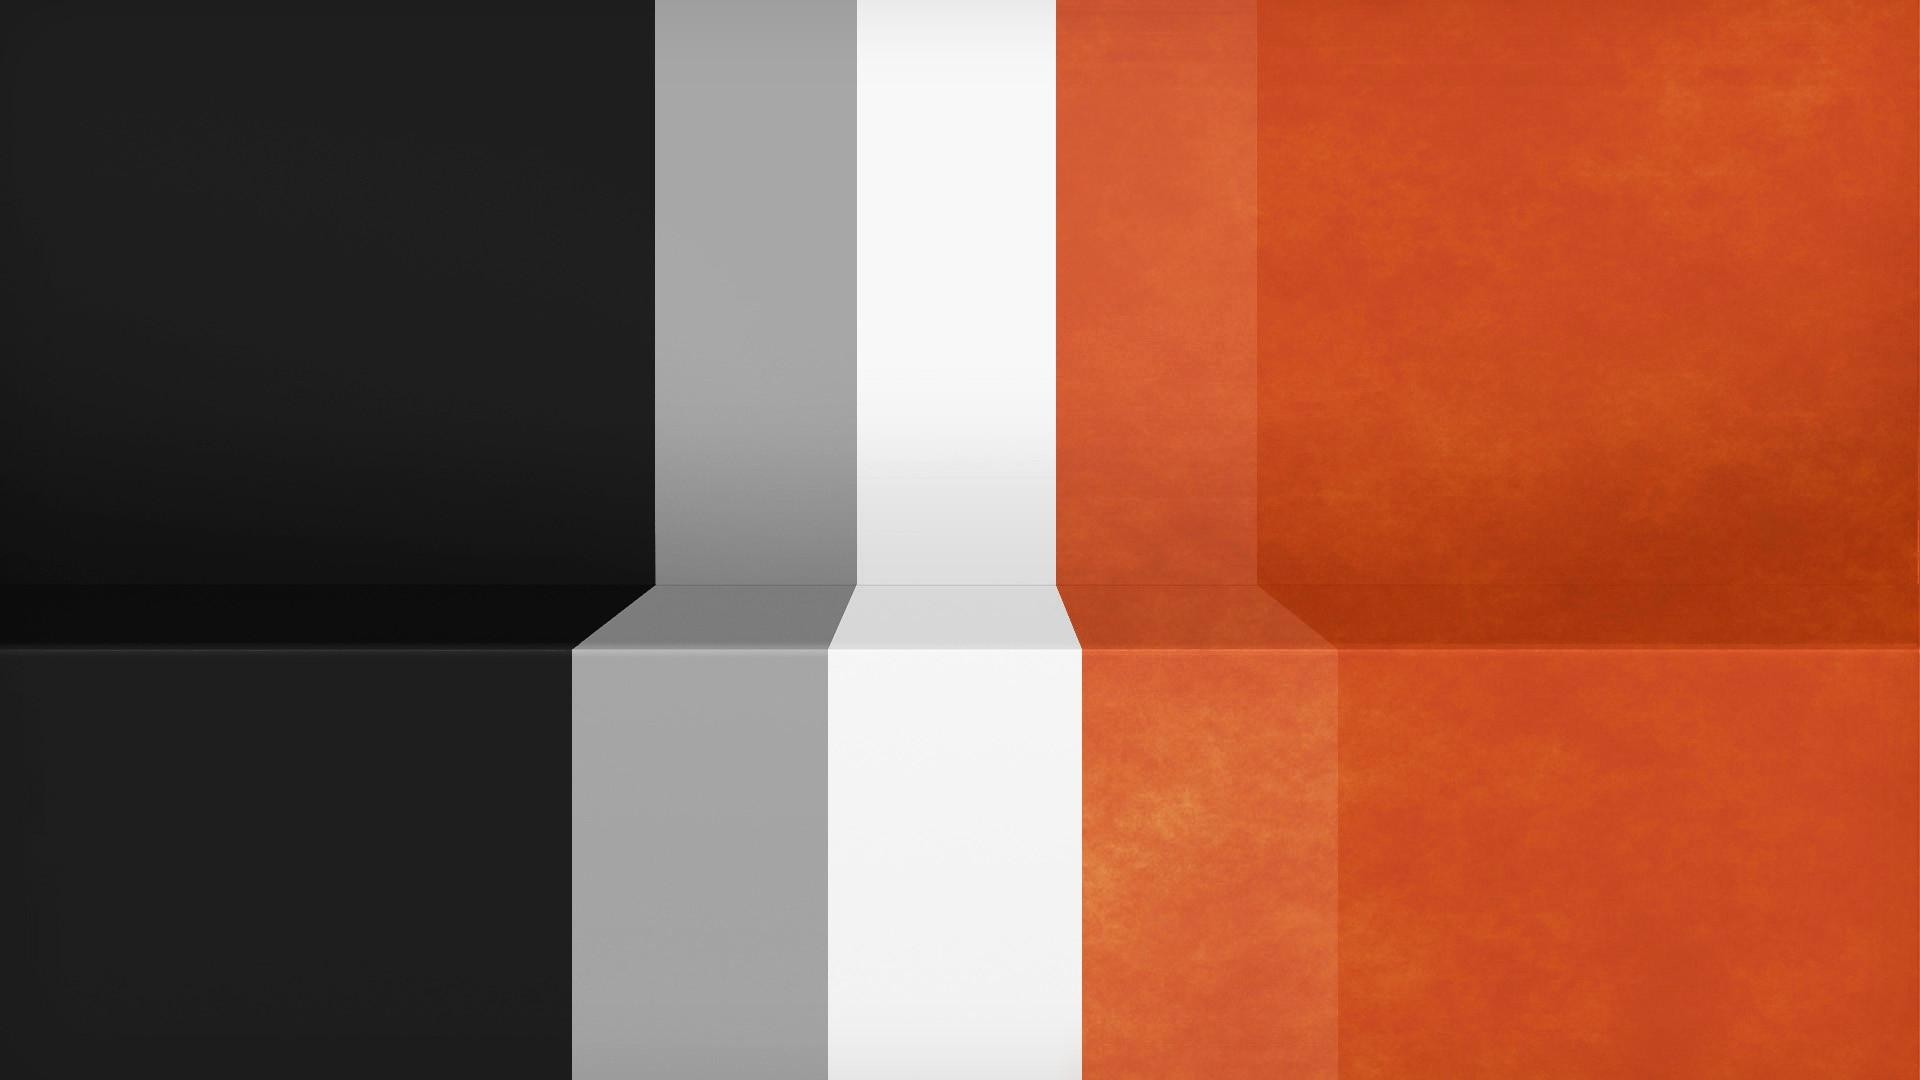 Abstract-black-minimalistic-white-orange-gray -textures-lines-racing-Lack-simple-stripes-Shading-wall-wallpaper-wpt7001680